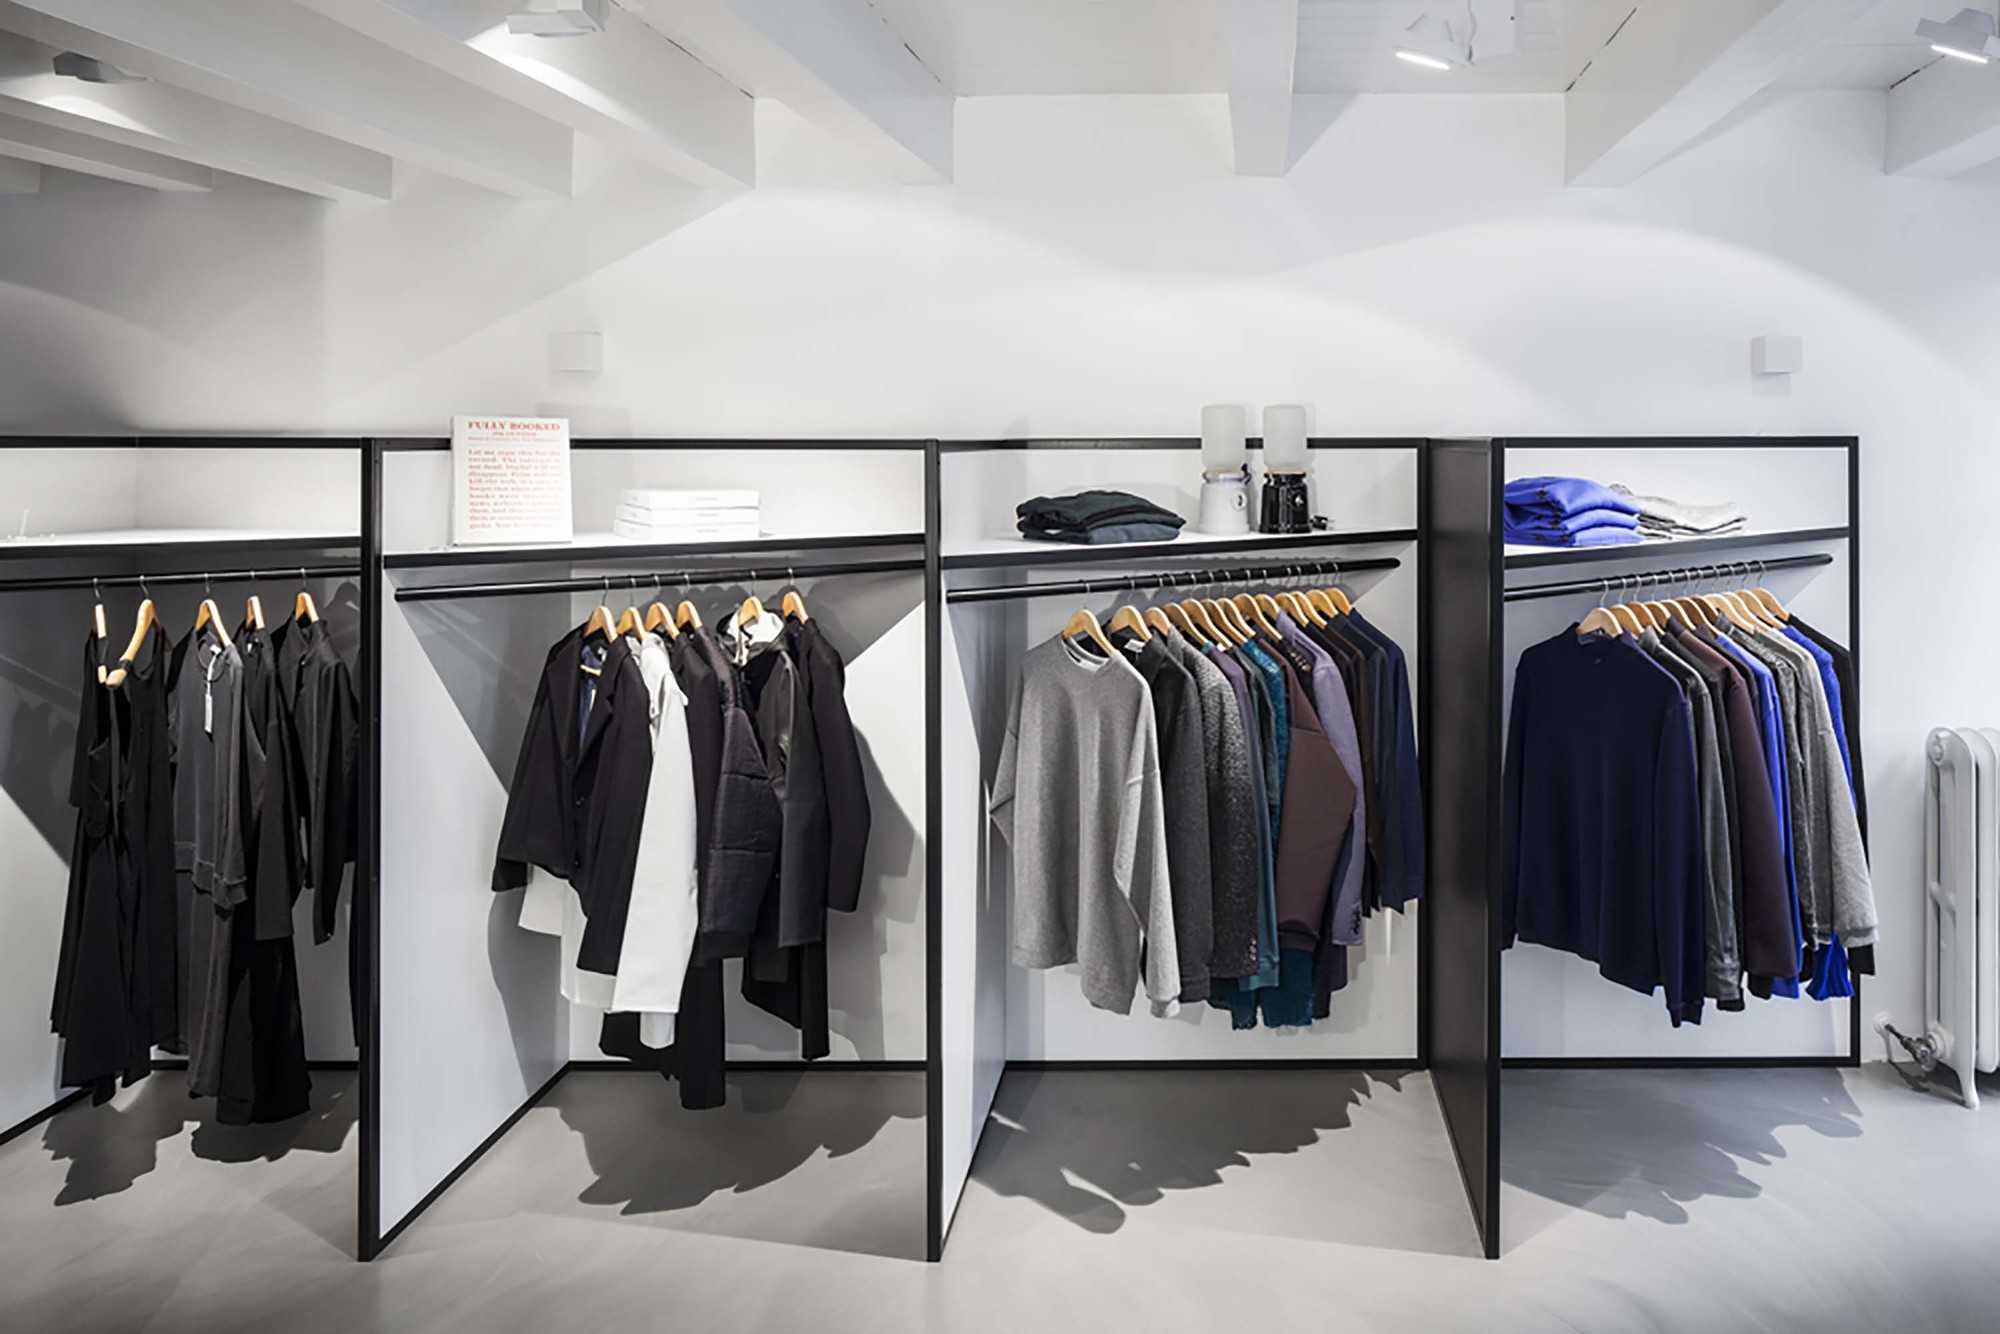 Shop 03 / i29 interior architects | ArchDaily